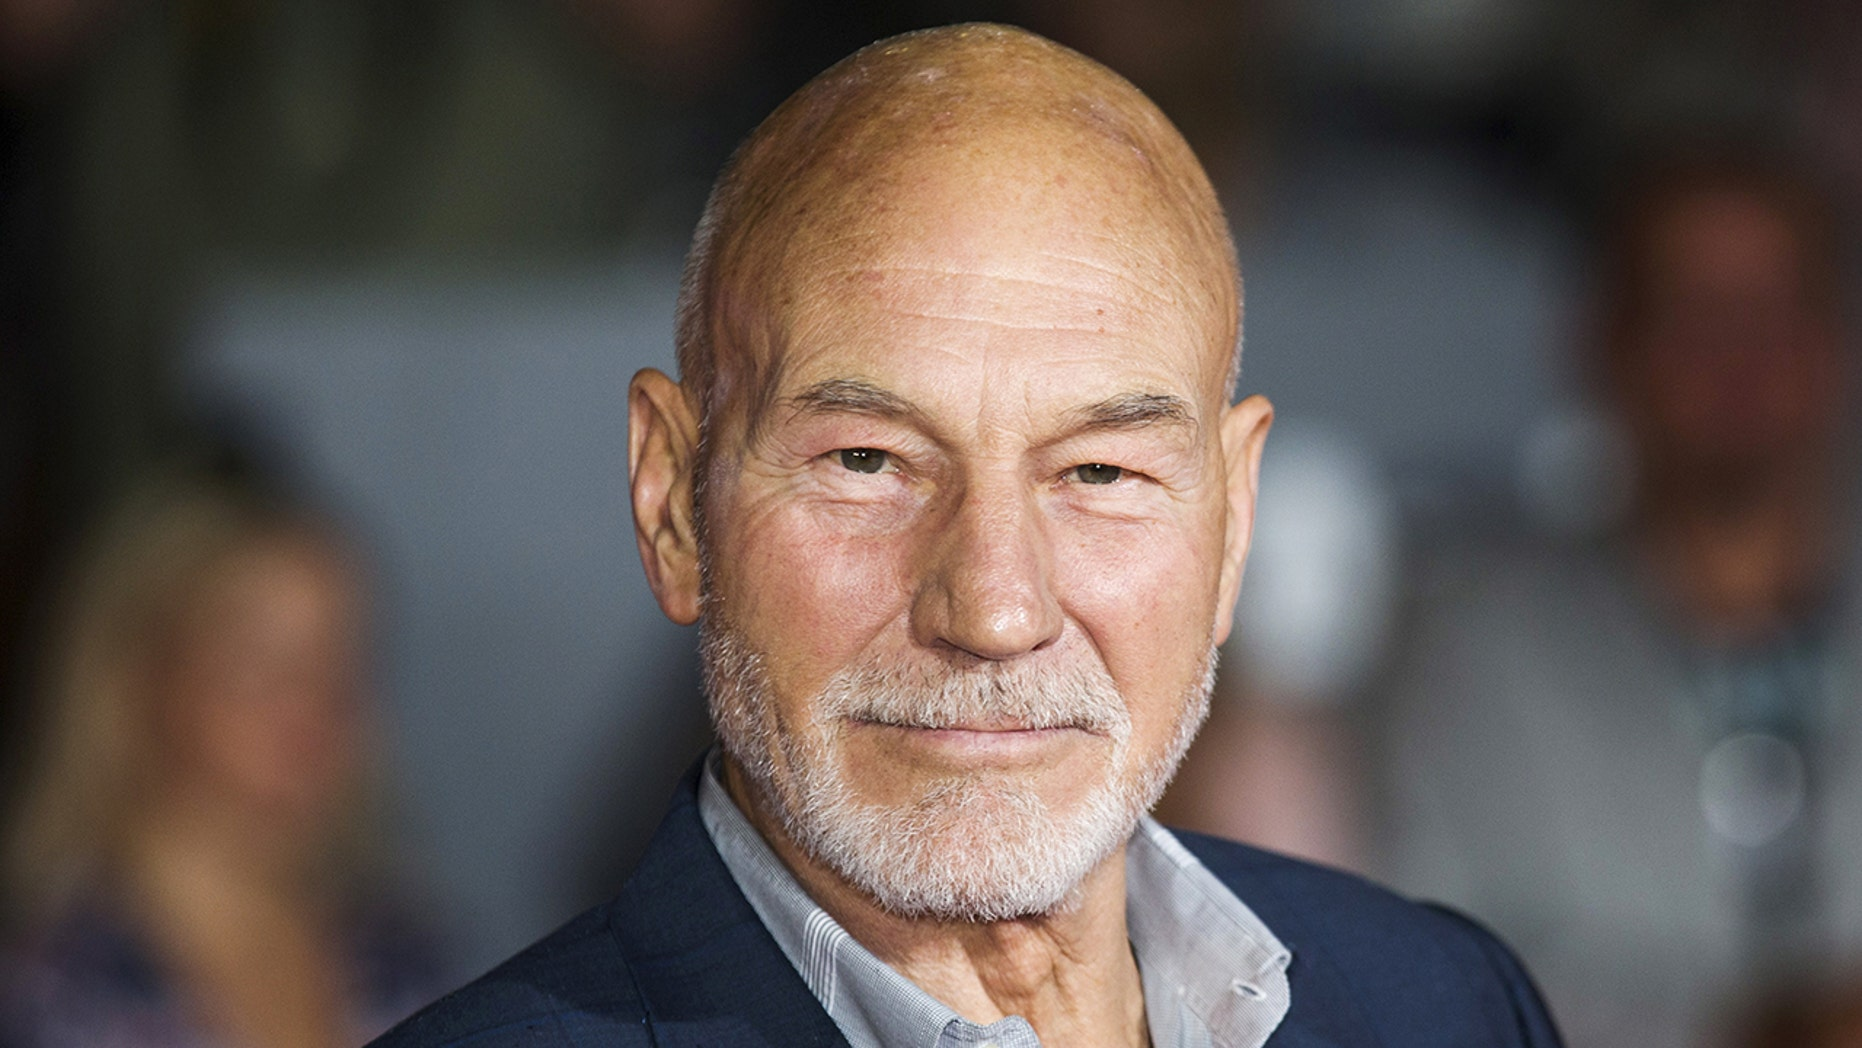 Patrick Stewart may return to the 'Star Trek' franchise at CBS.